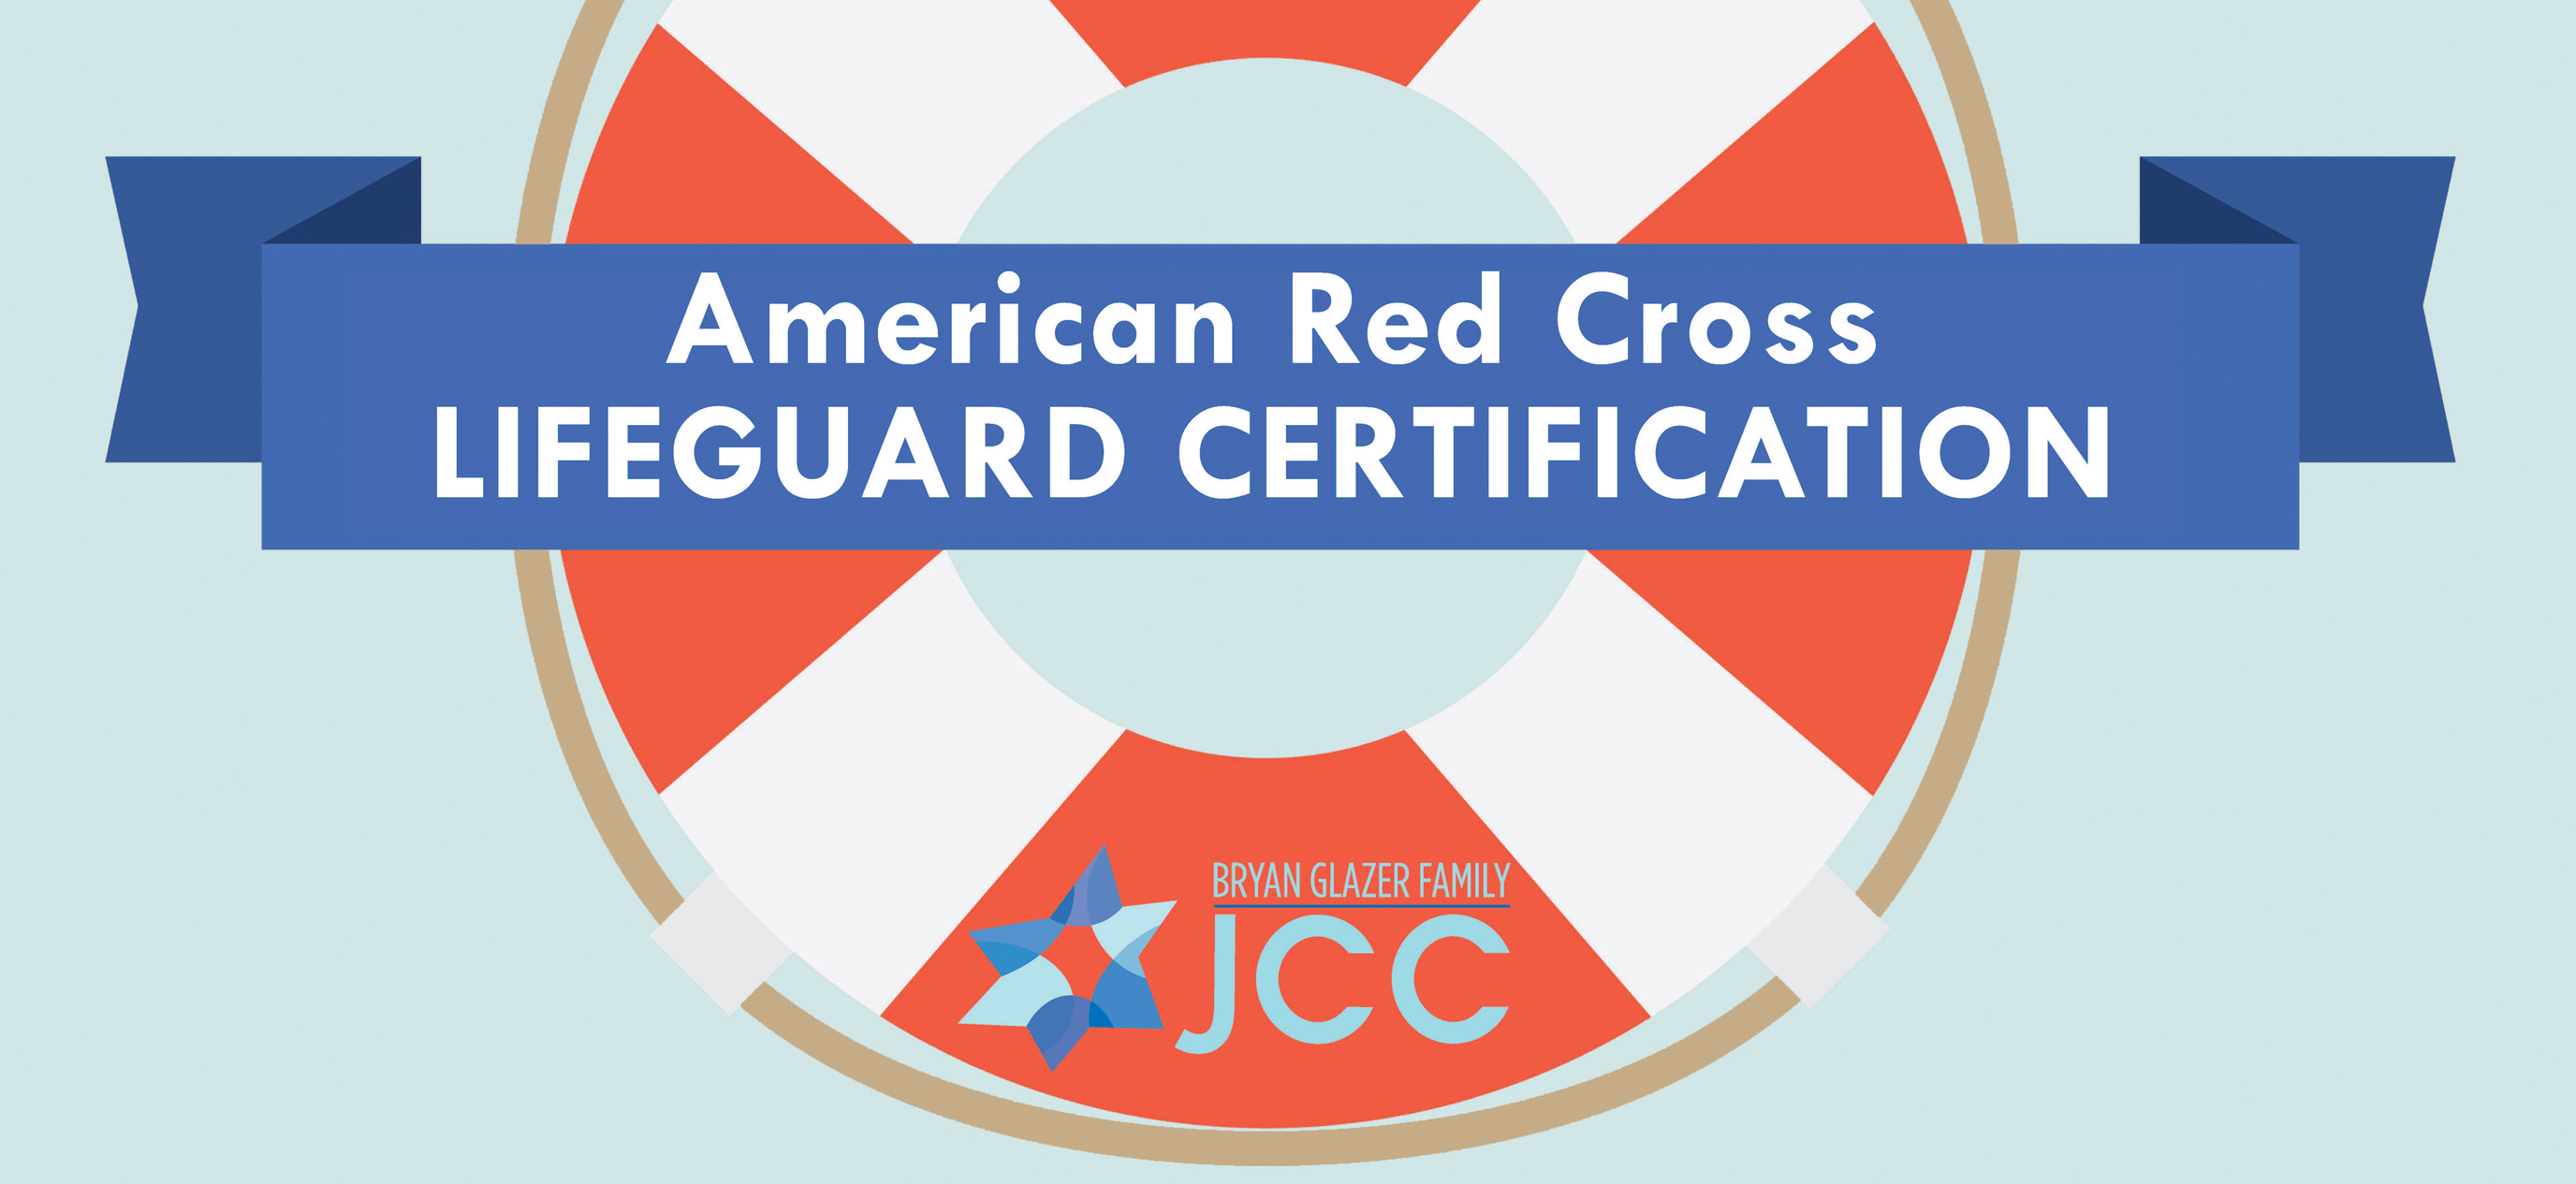 American Red Cross Lifeguard Certification in Tampa at the JCC